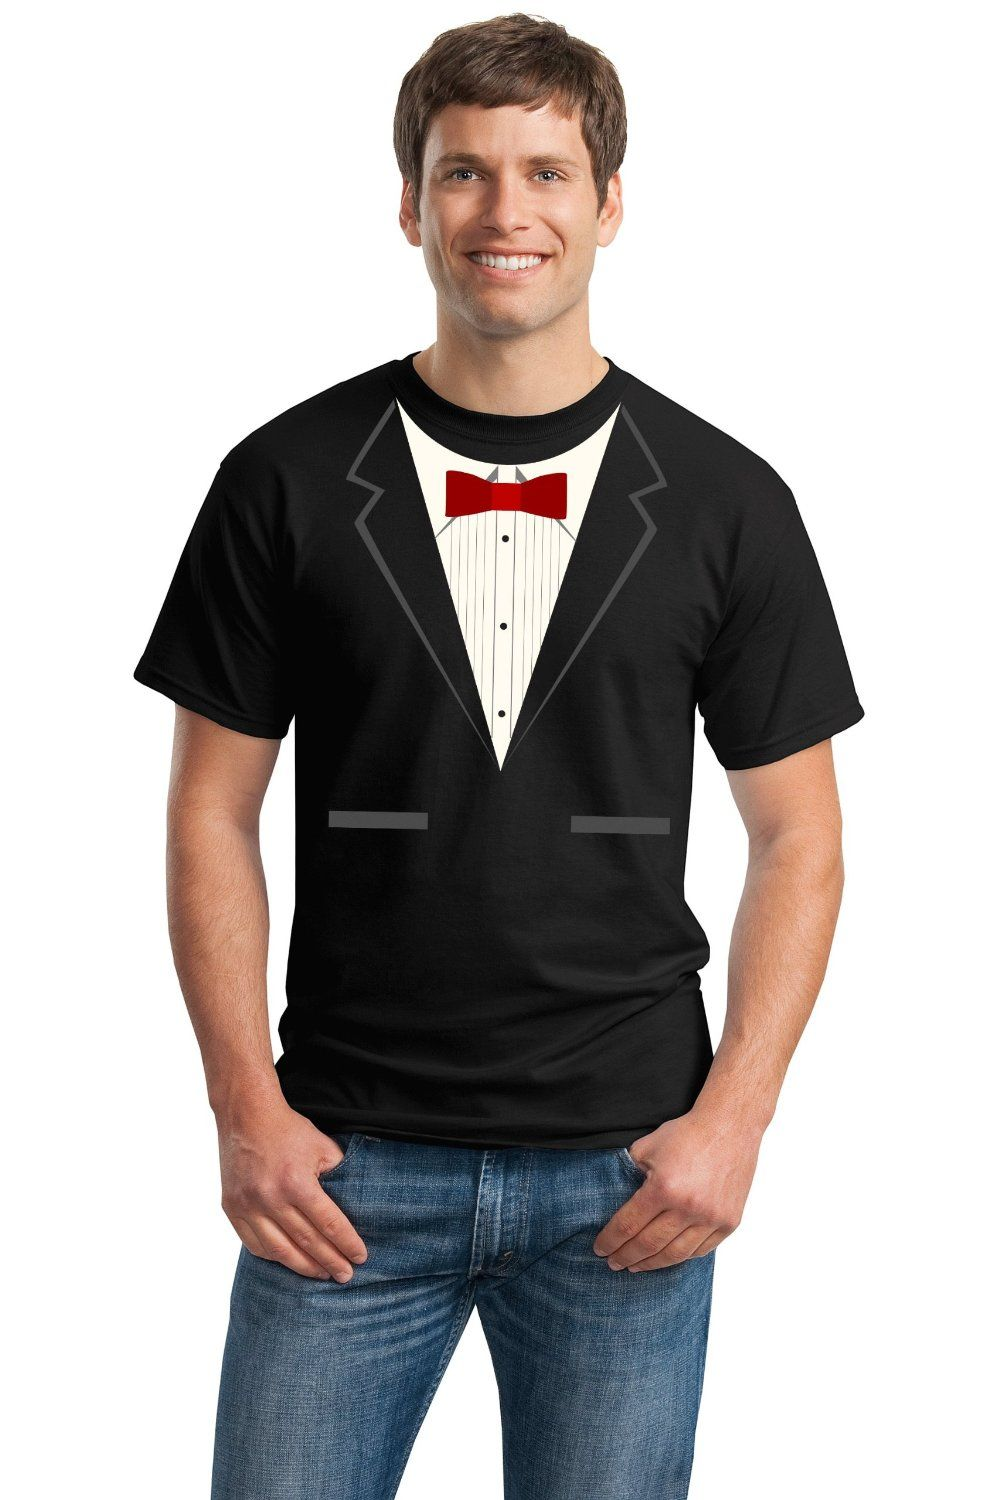 Black Tuxedo Adult Unisex T-shirt / Funny Formal Bachelor Party ...